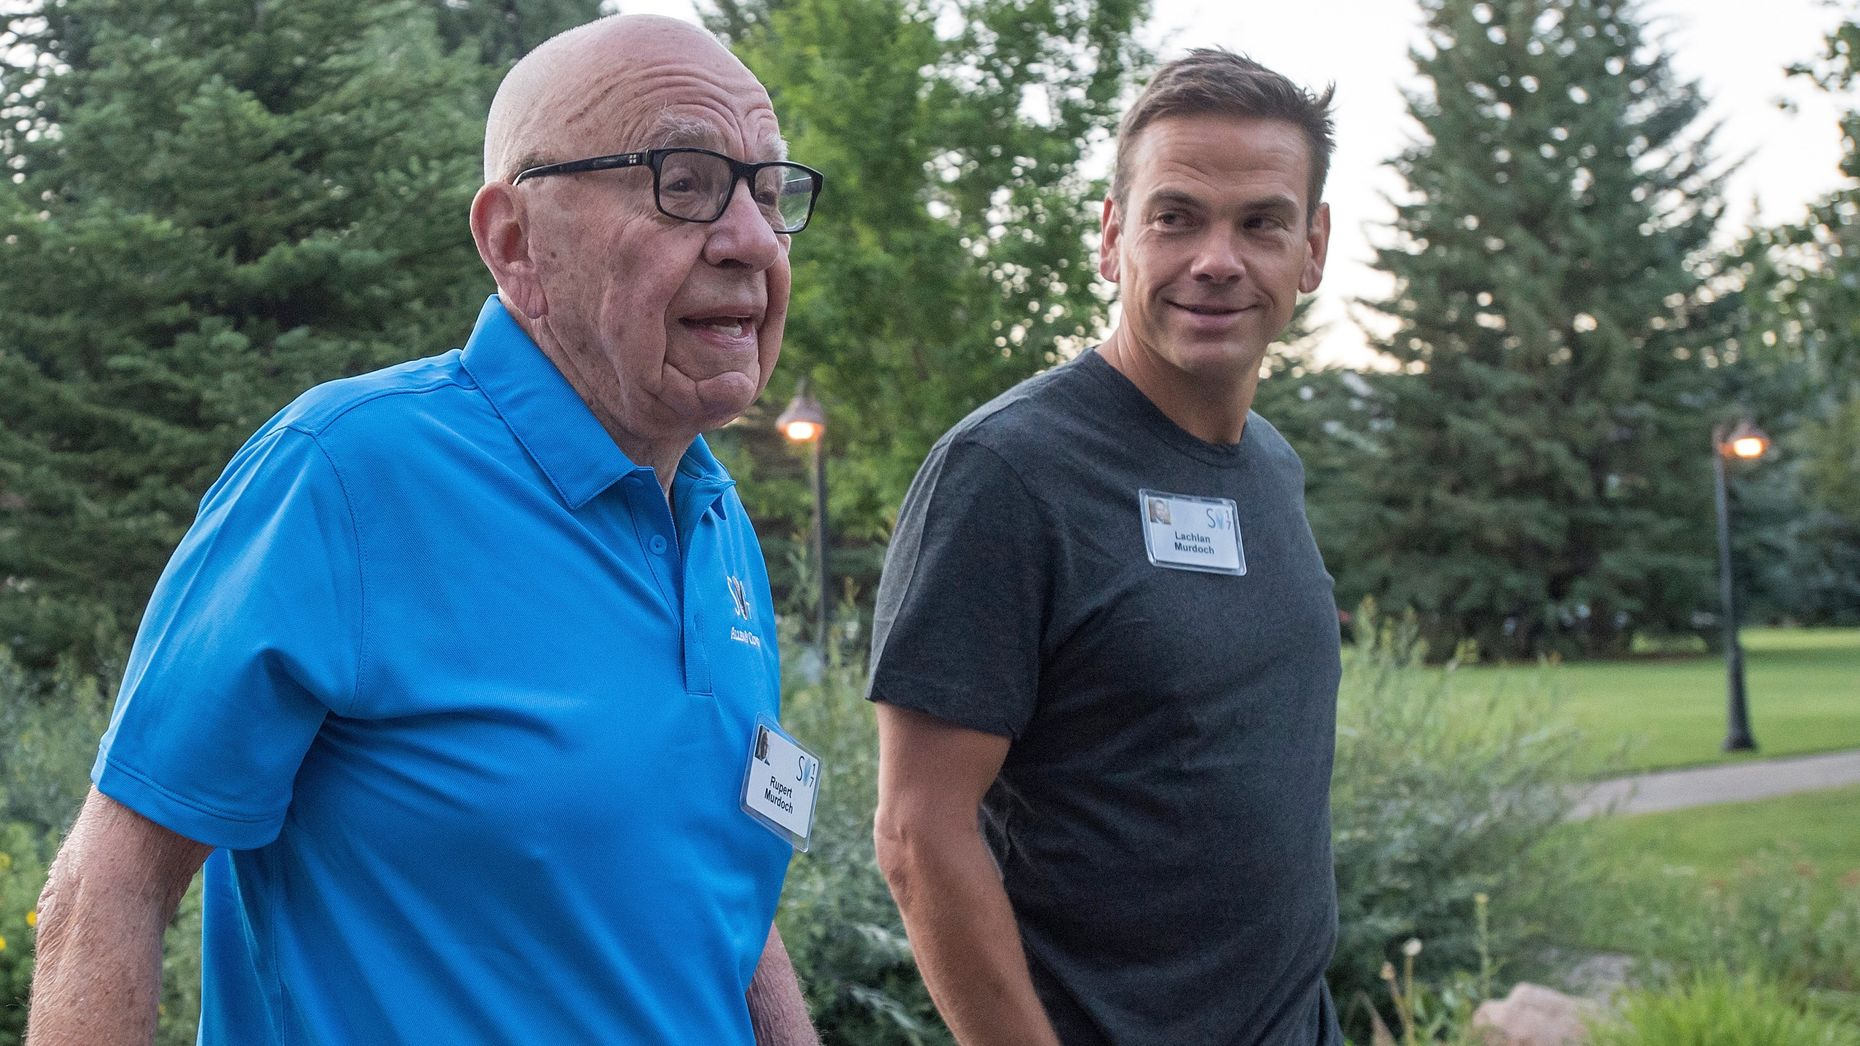 Rupert Murdoch with his son Lachlan at the Allen & Co conference in Sun Valley in July. Photo by Bloomberg.